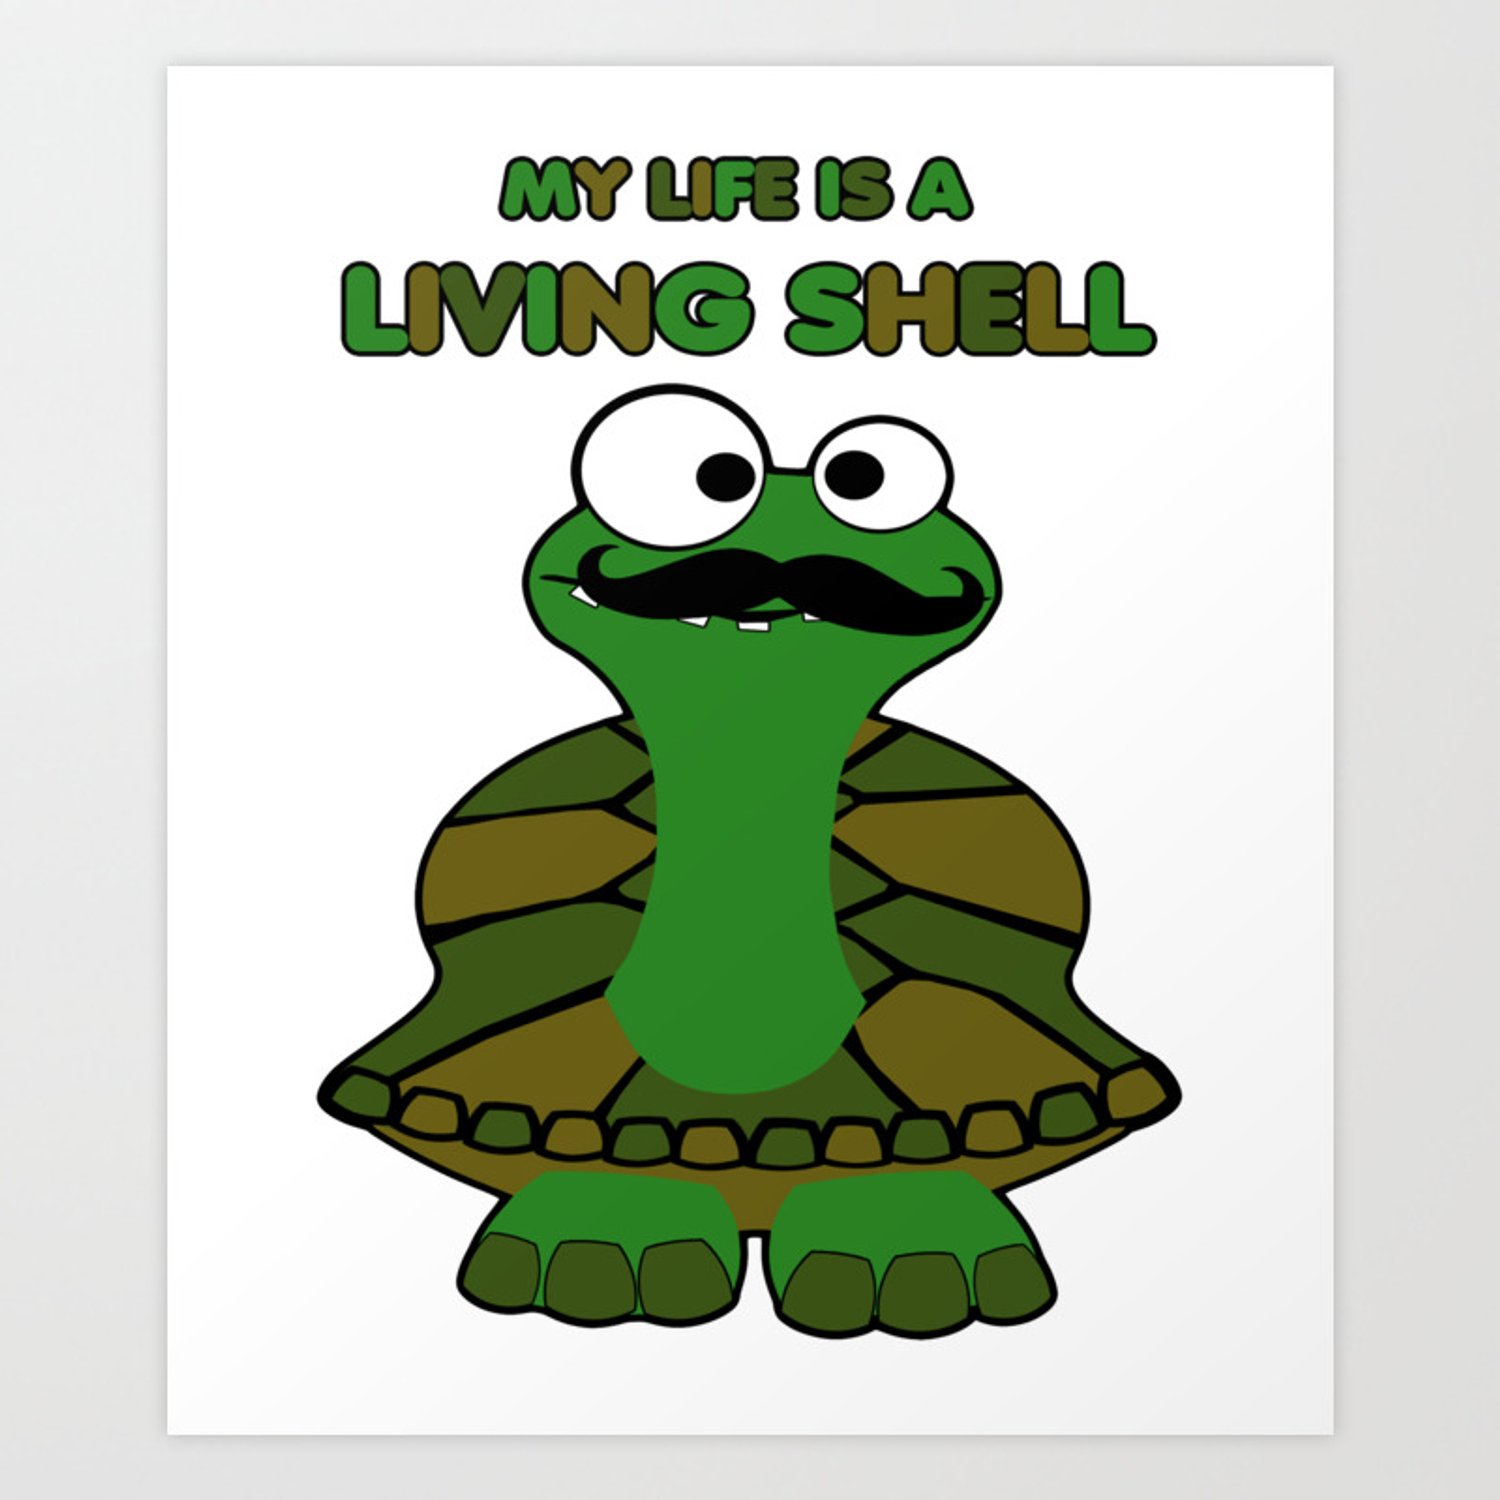 Funny Mustache Turtle Living Shell Art Print By Jerrylambert